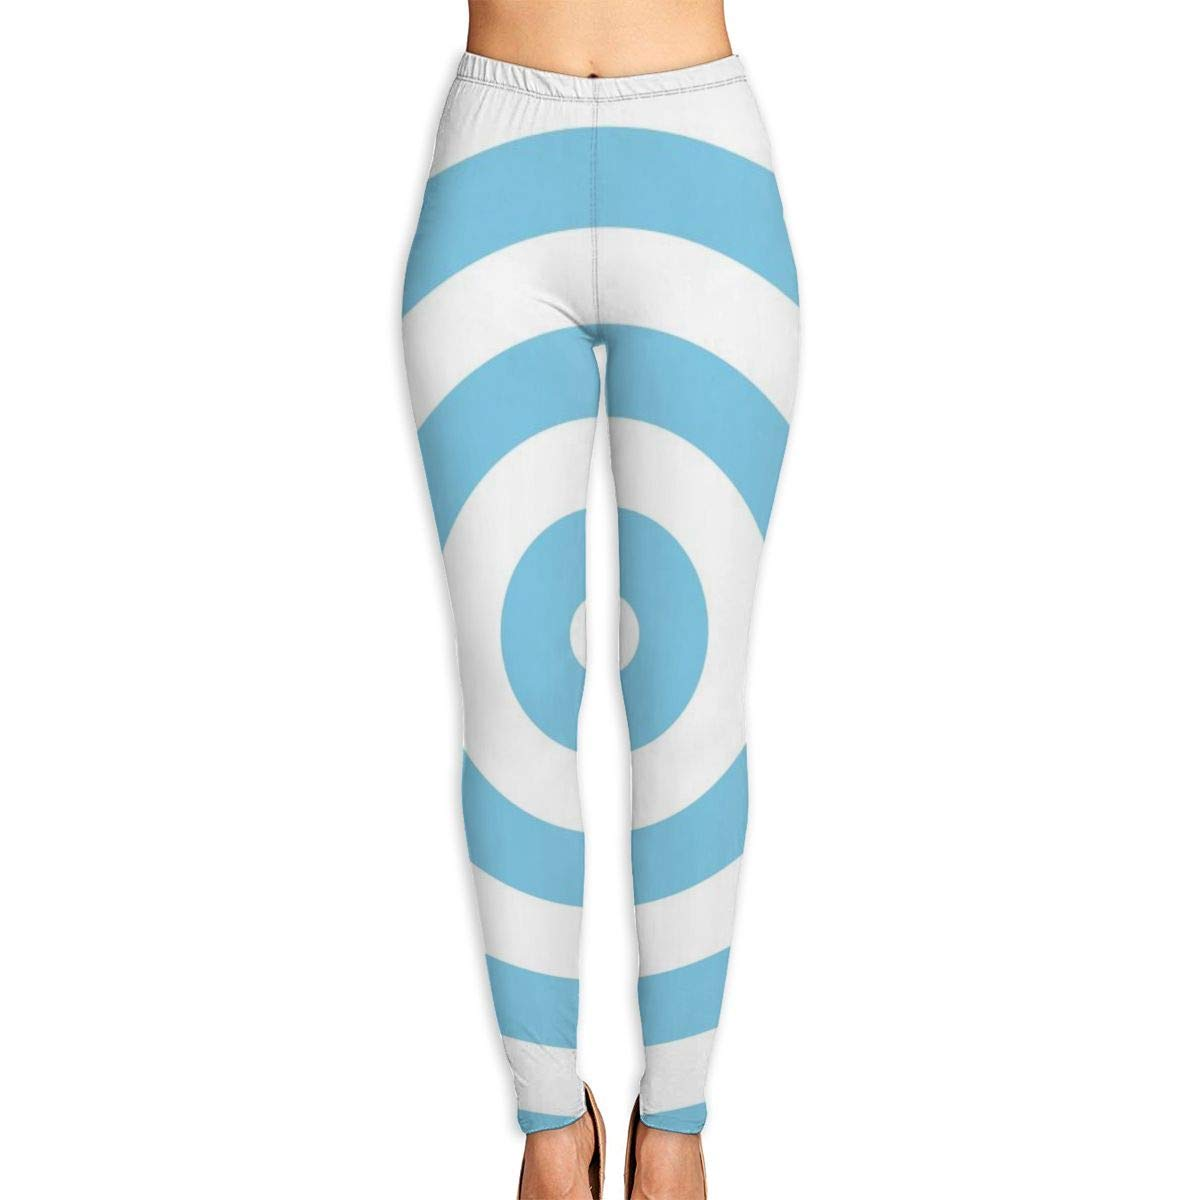 Ayf-S478 Linear White Blue Gradient Womens Yoga Pants Sports Workout Leggings Athletic Tight Pants Fitness Power Stretch Yoga Leggings Tummy Control